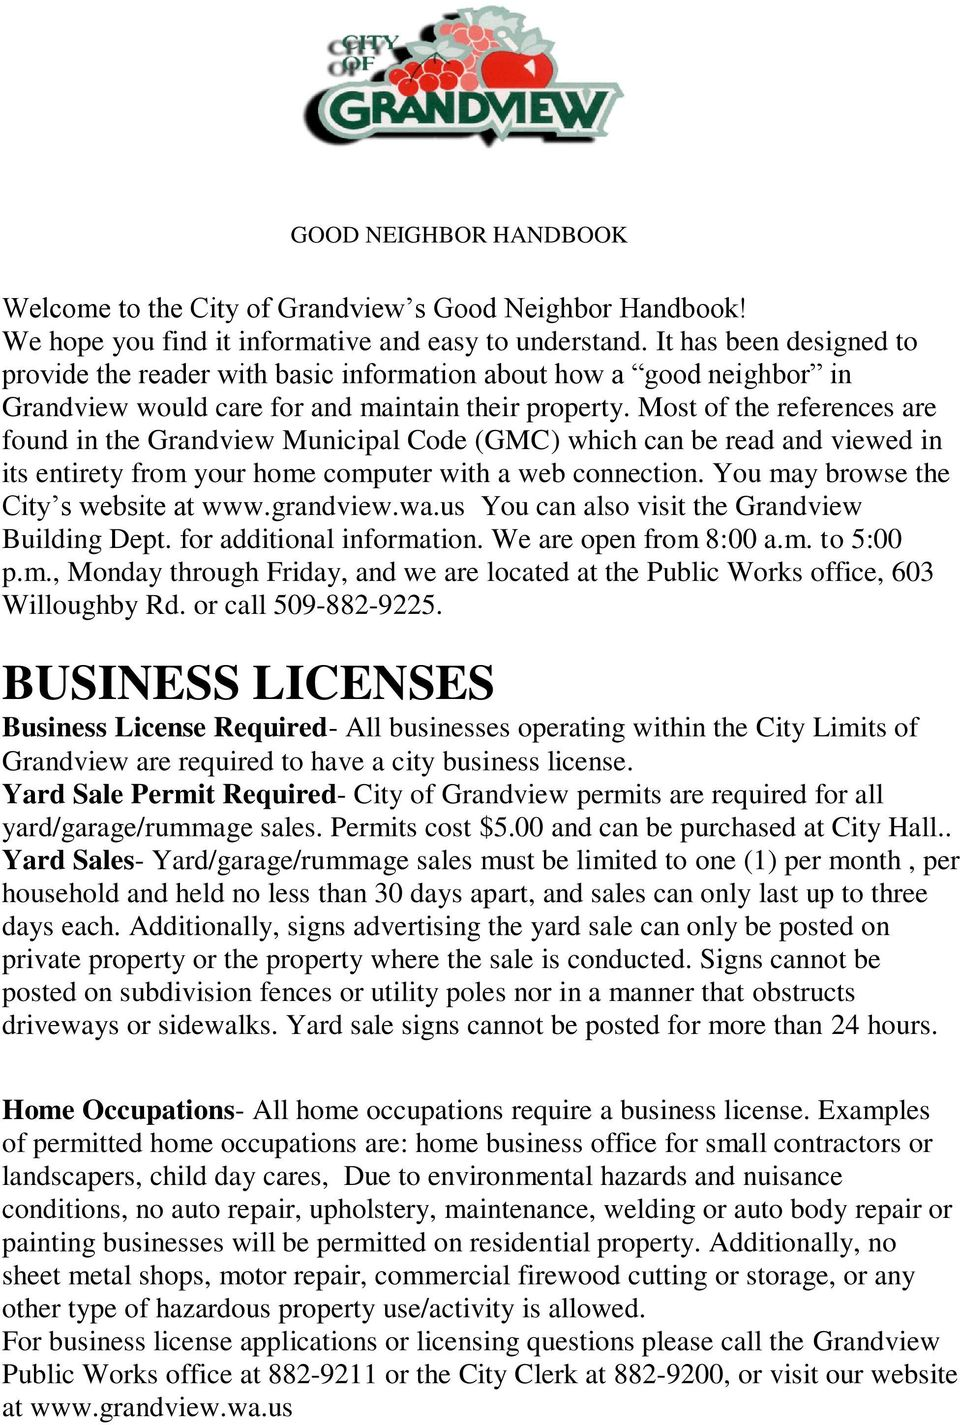 Most of the references are found in the Grandview Municipal Code (GMC) which can be read and viewed in its entirety from your home computer with a web connection.